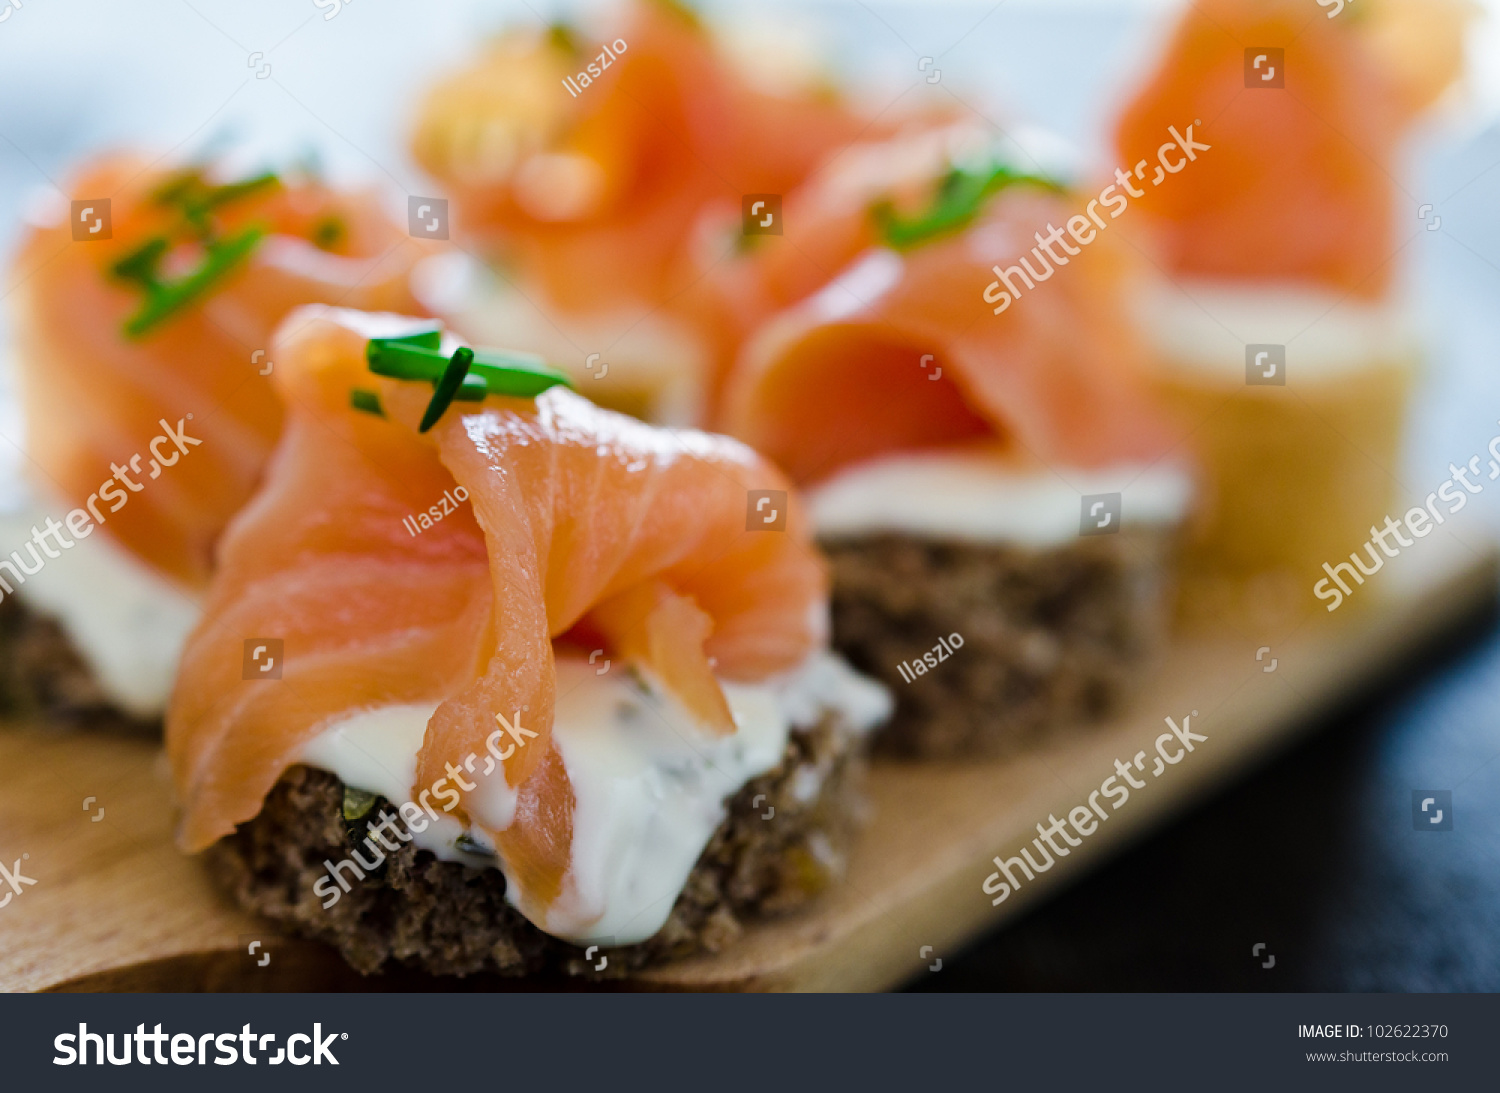 Canapes smoked salmon cream cheese stock photo 102622370 for Smoked salmon cream cheese canape